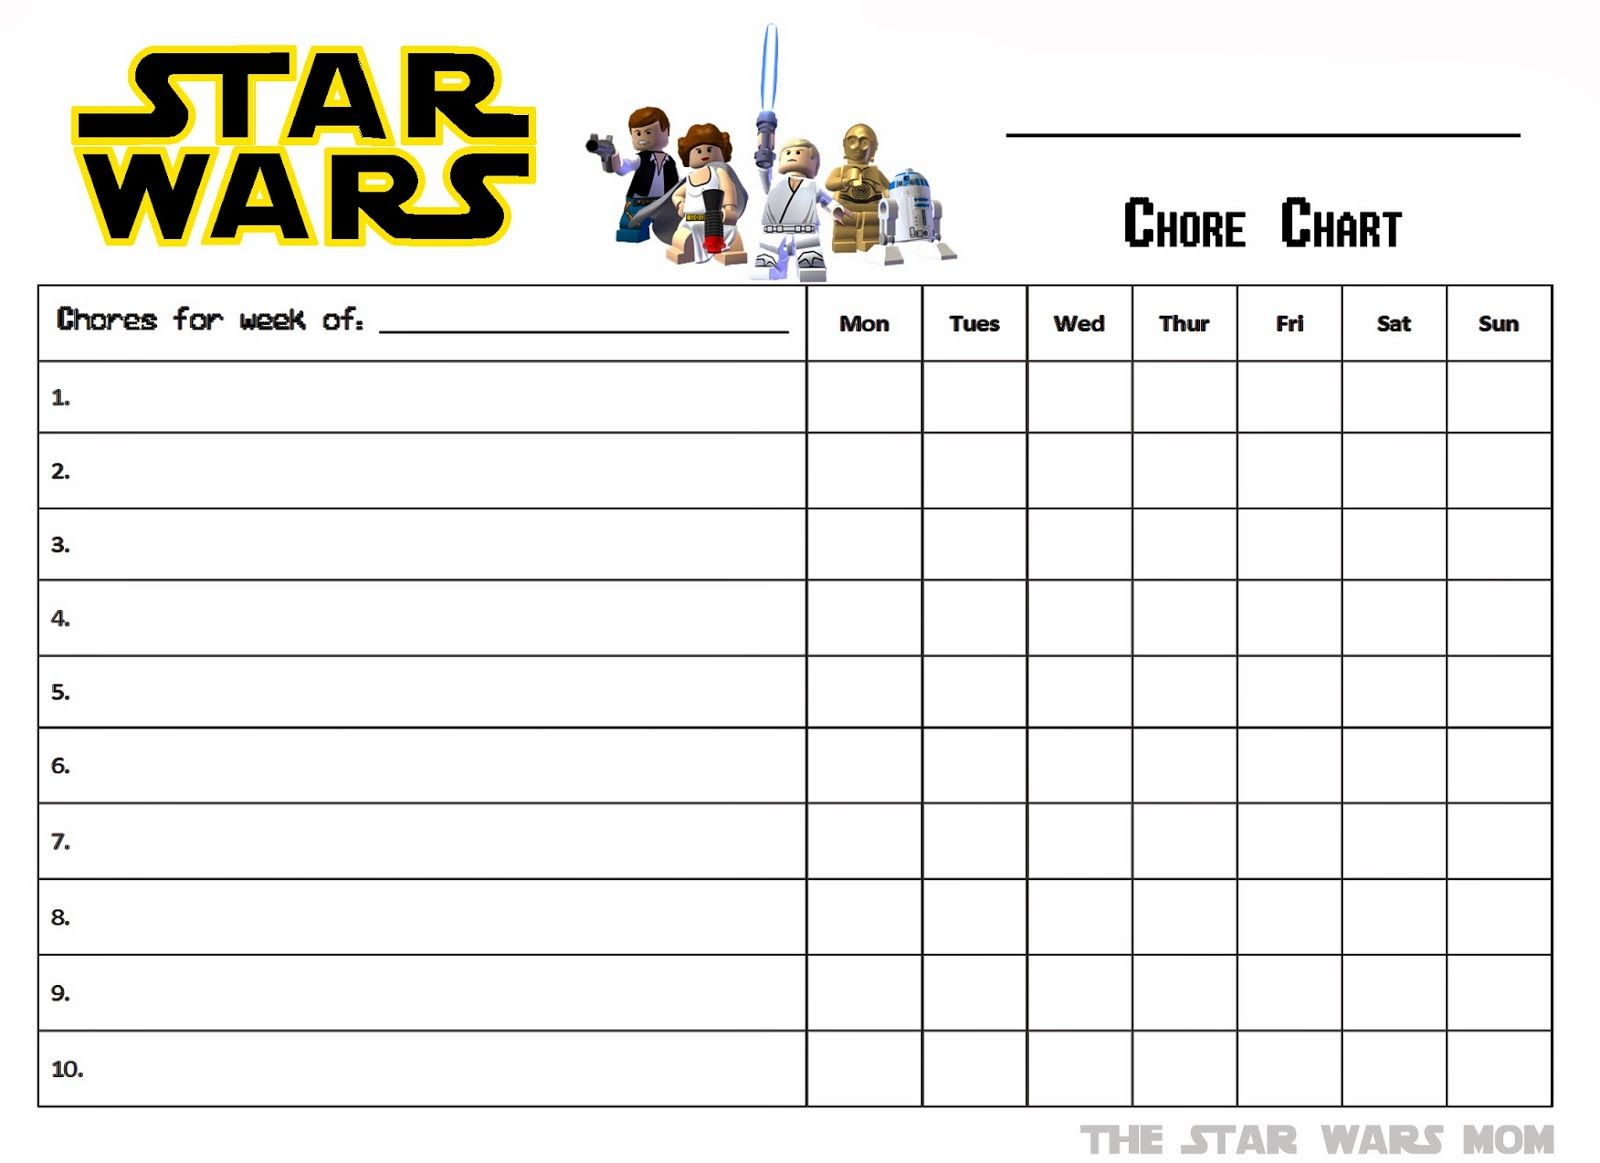 Star Wars Free Printable Chore Chart For the Home – Chore List Template